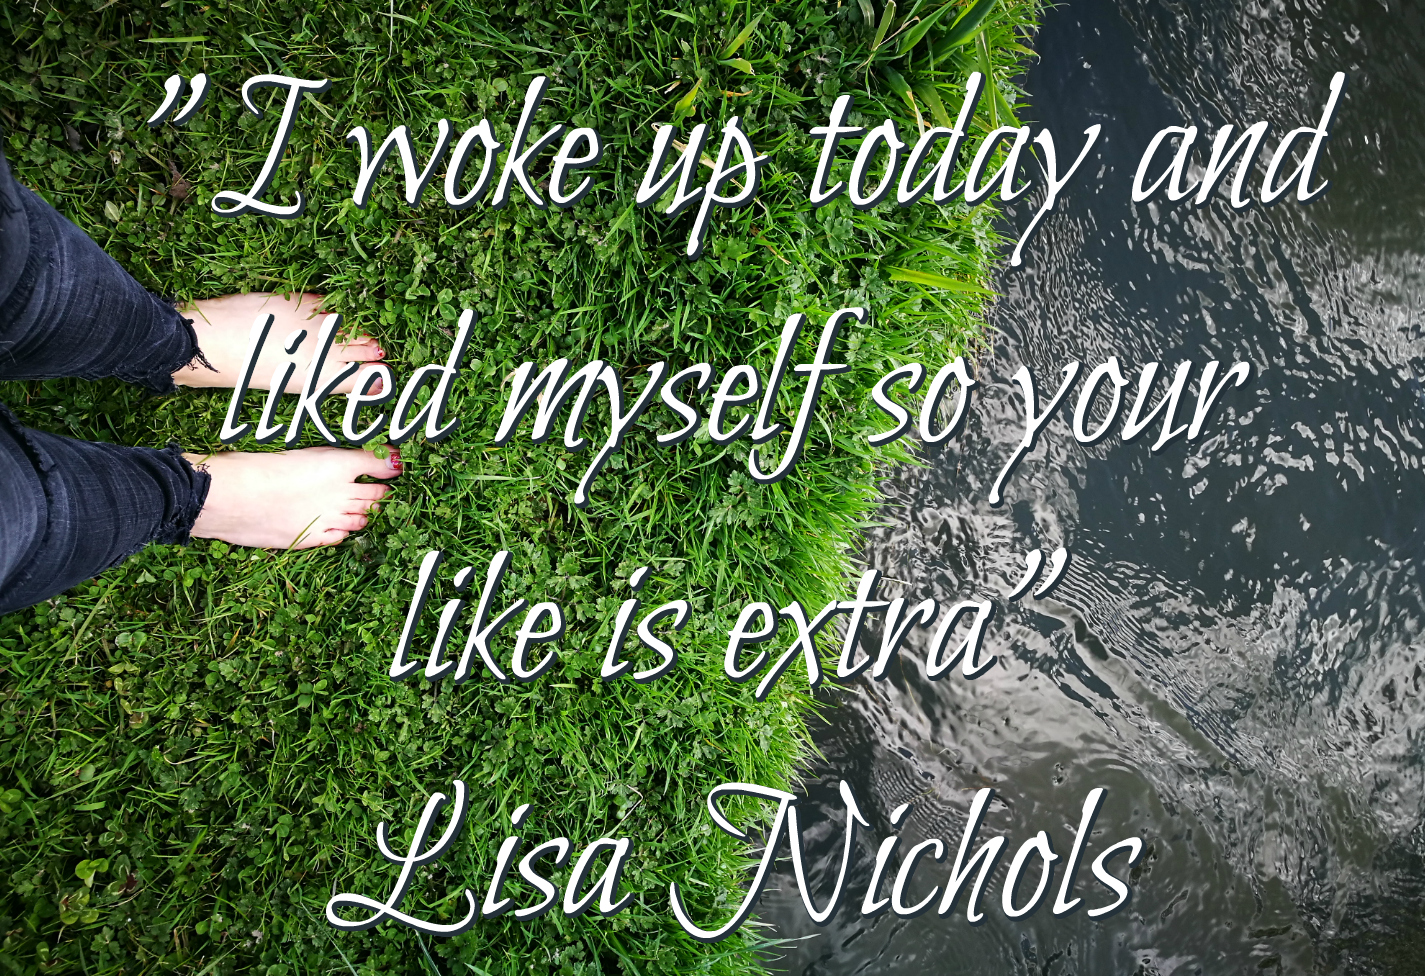 I woke up today and liked myself so your like is extra lisa nichols quote on self-love